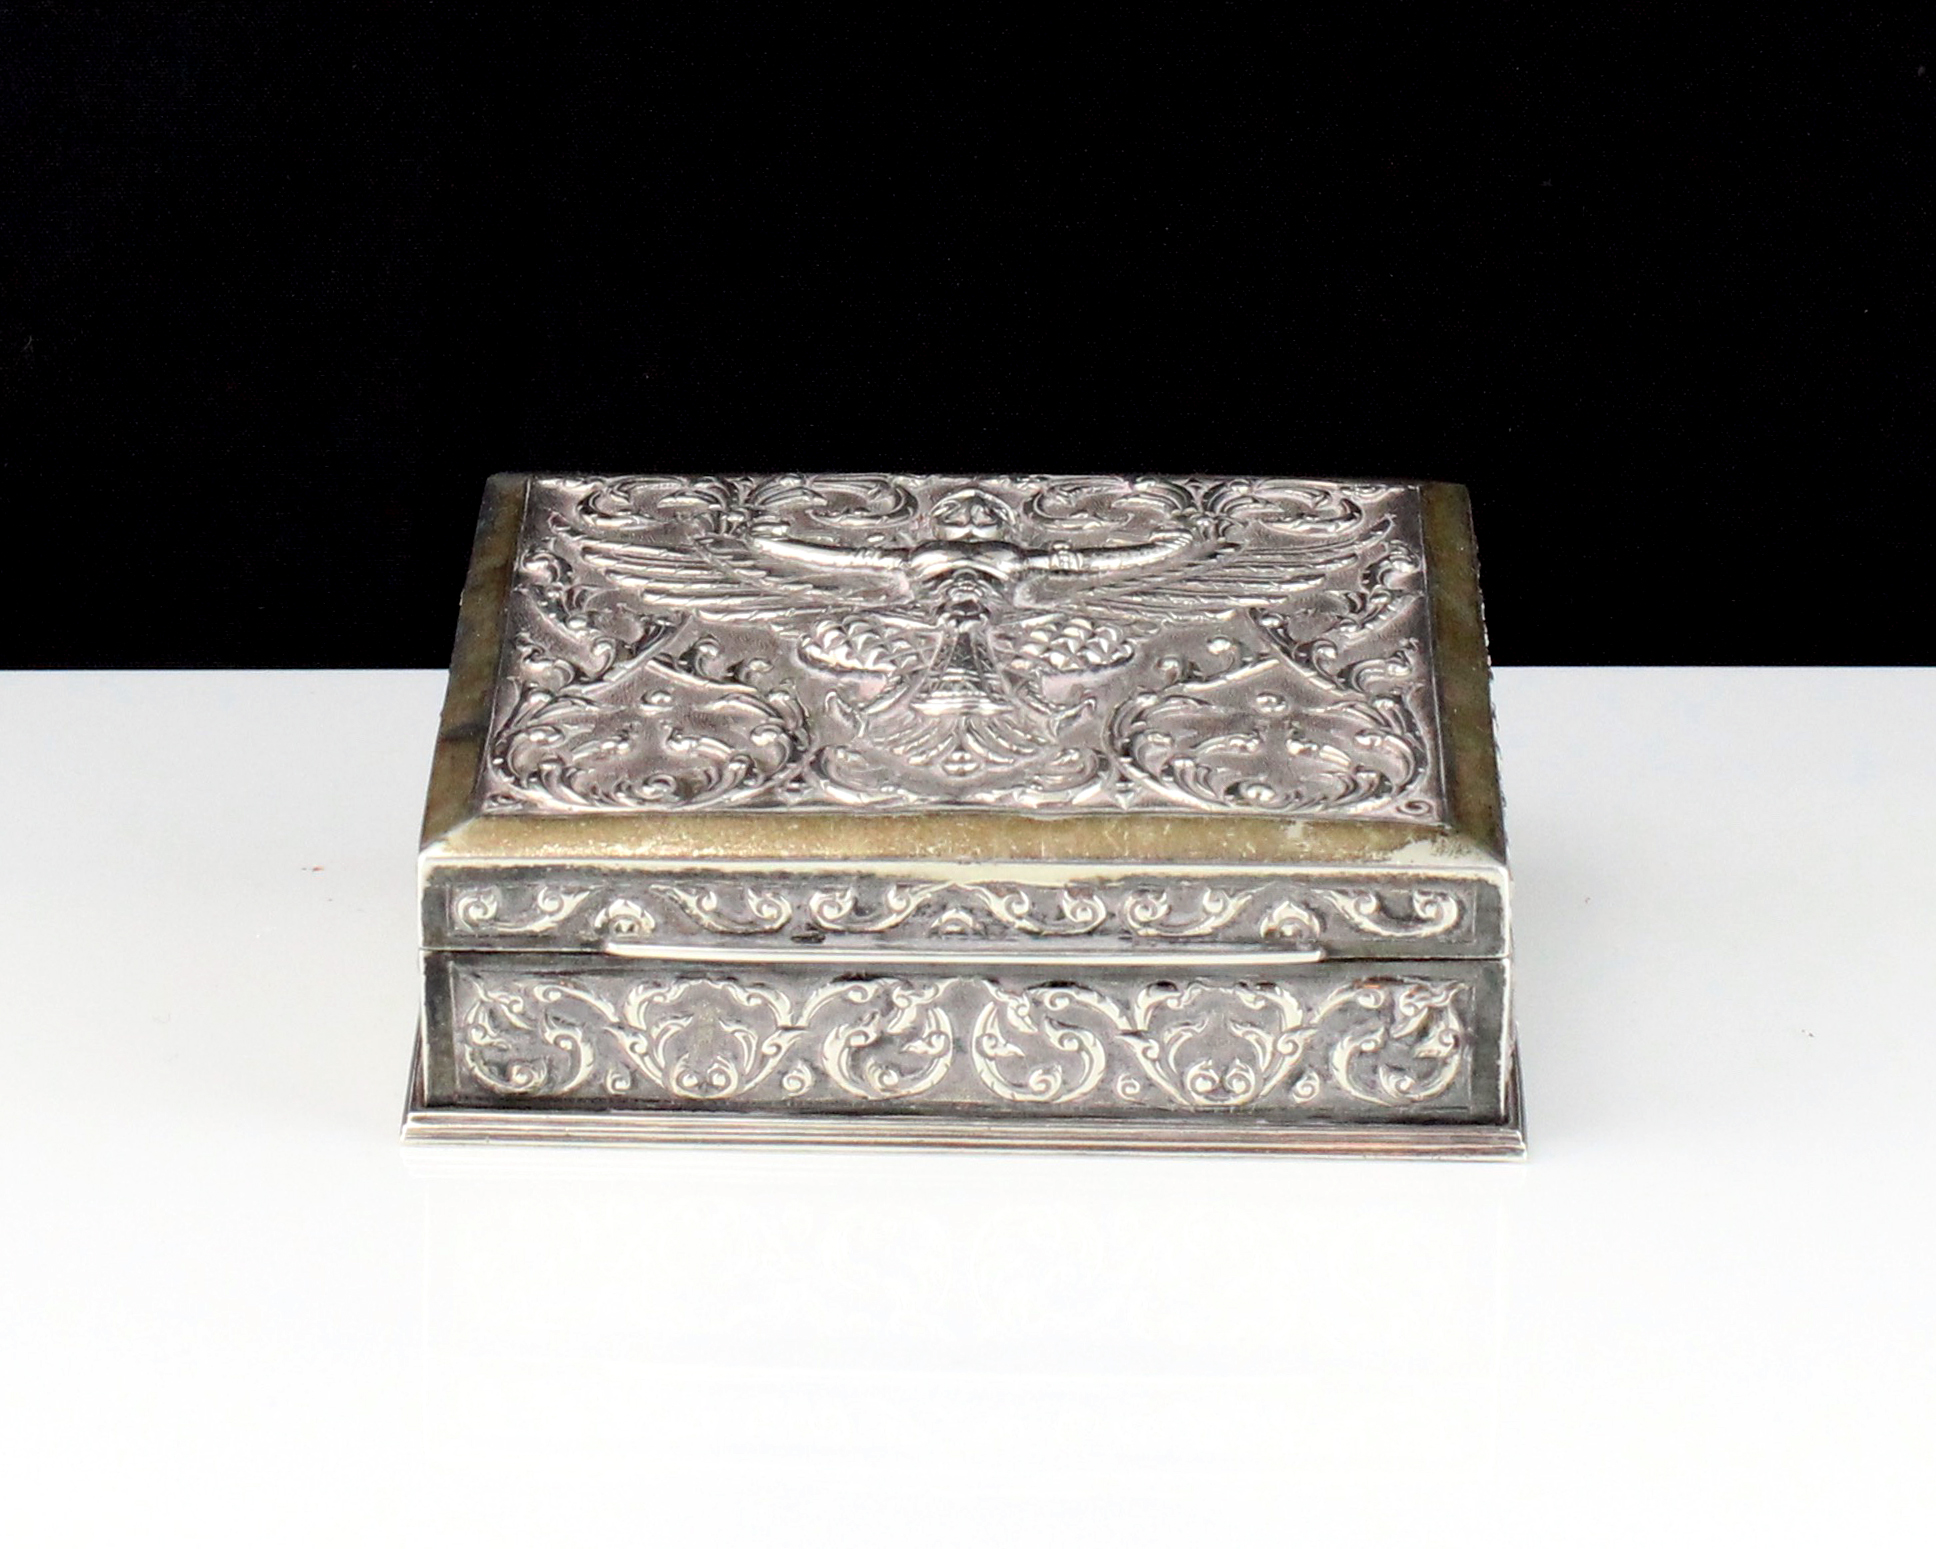 A mid 20th Century Siamese / Thai Sterling Silver cigar box of rectangular form with high relief